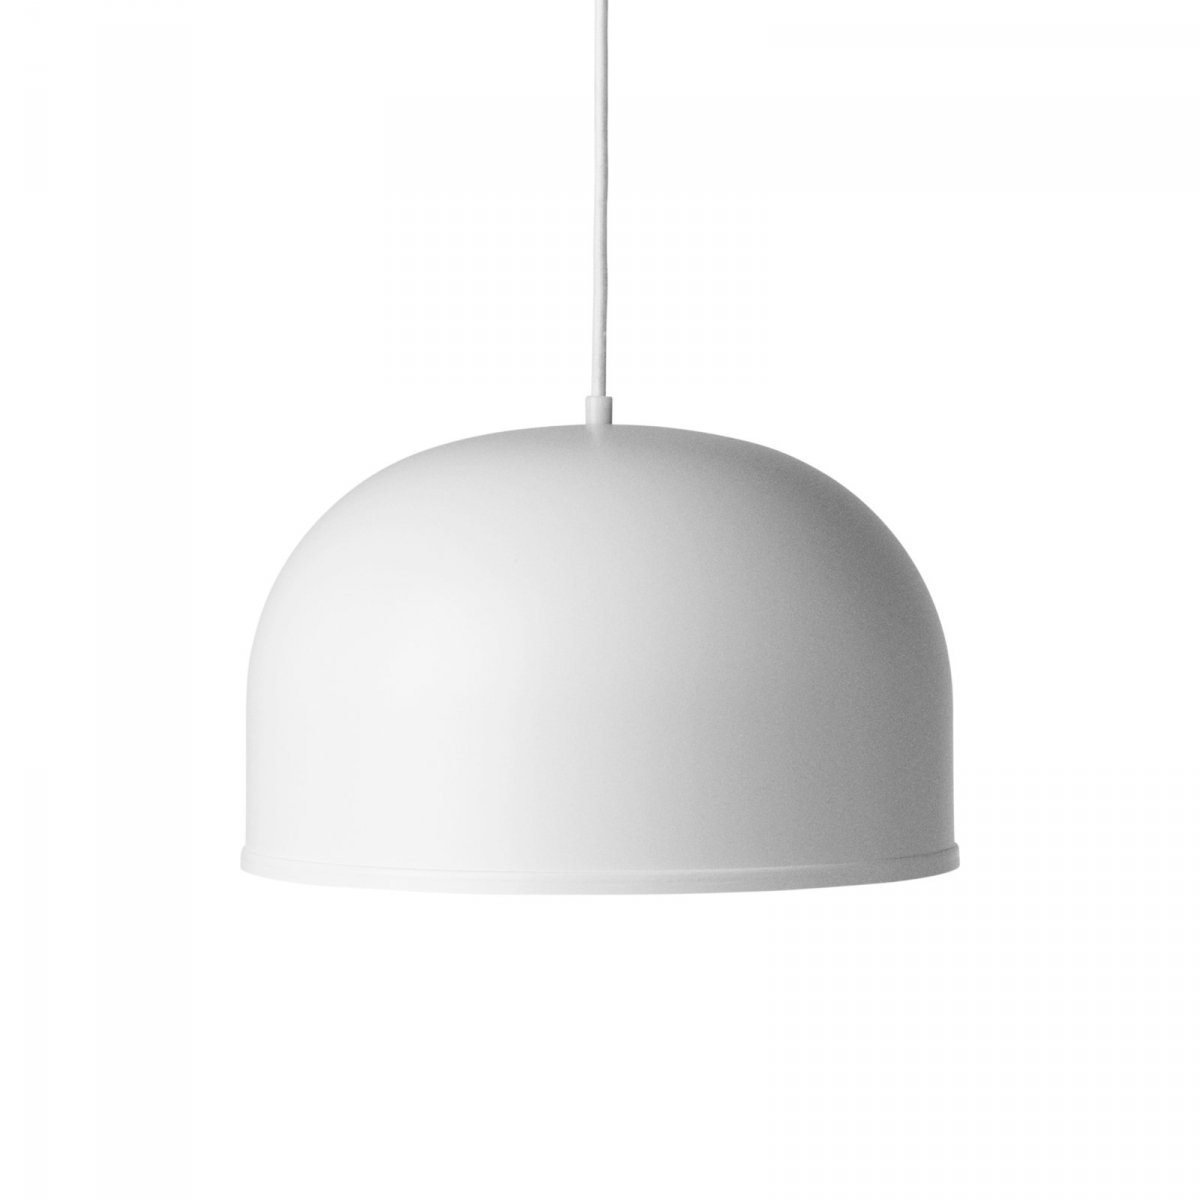 GM 30 Pendant, white.